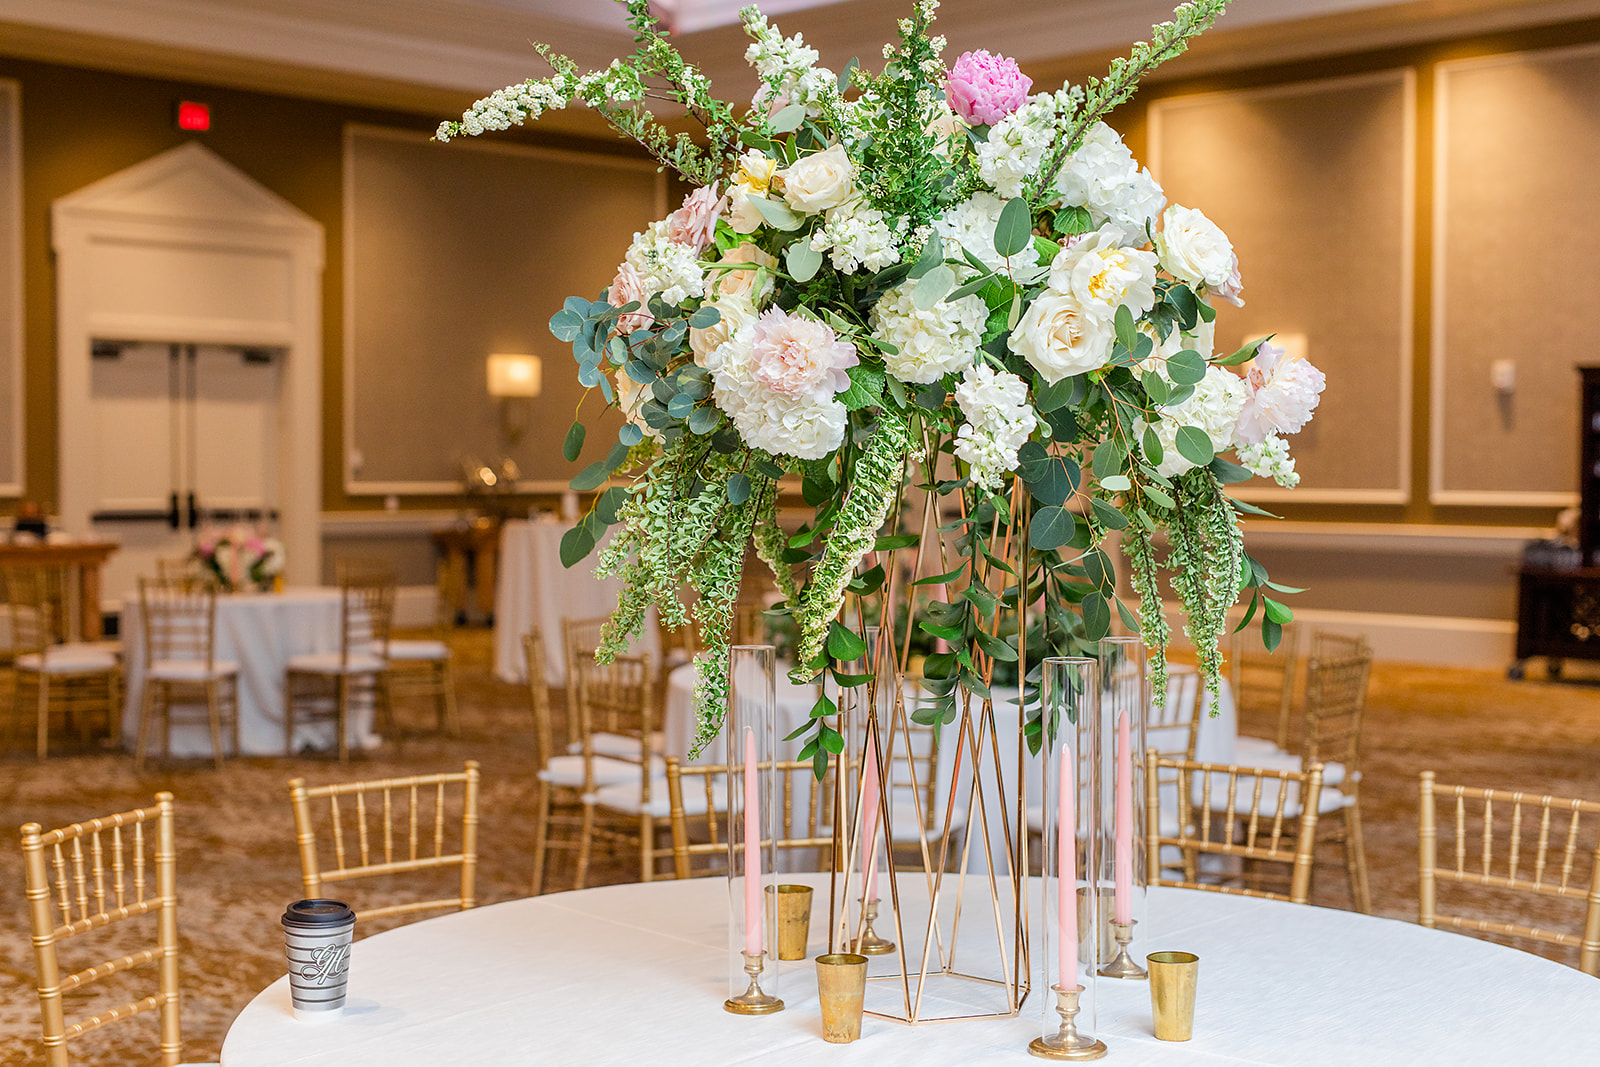 Blush-Black-Tie-Wedding-at-the-Grand-Hotel-in-Point-Clear-Alabama-Anna-Filly-Photography-Cross-Wedding-Reception_2_--12.jpg